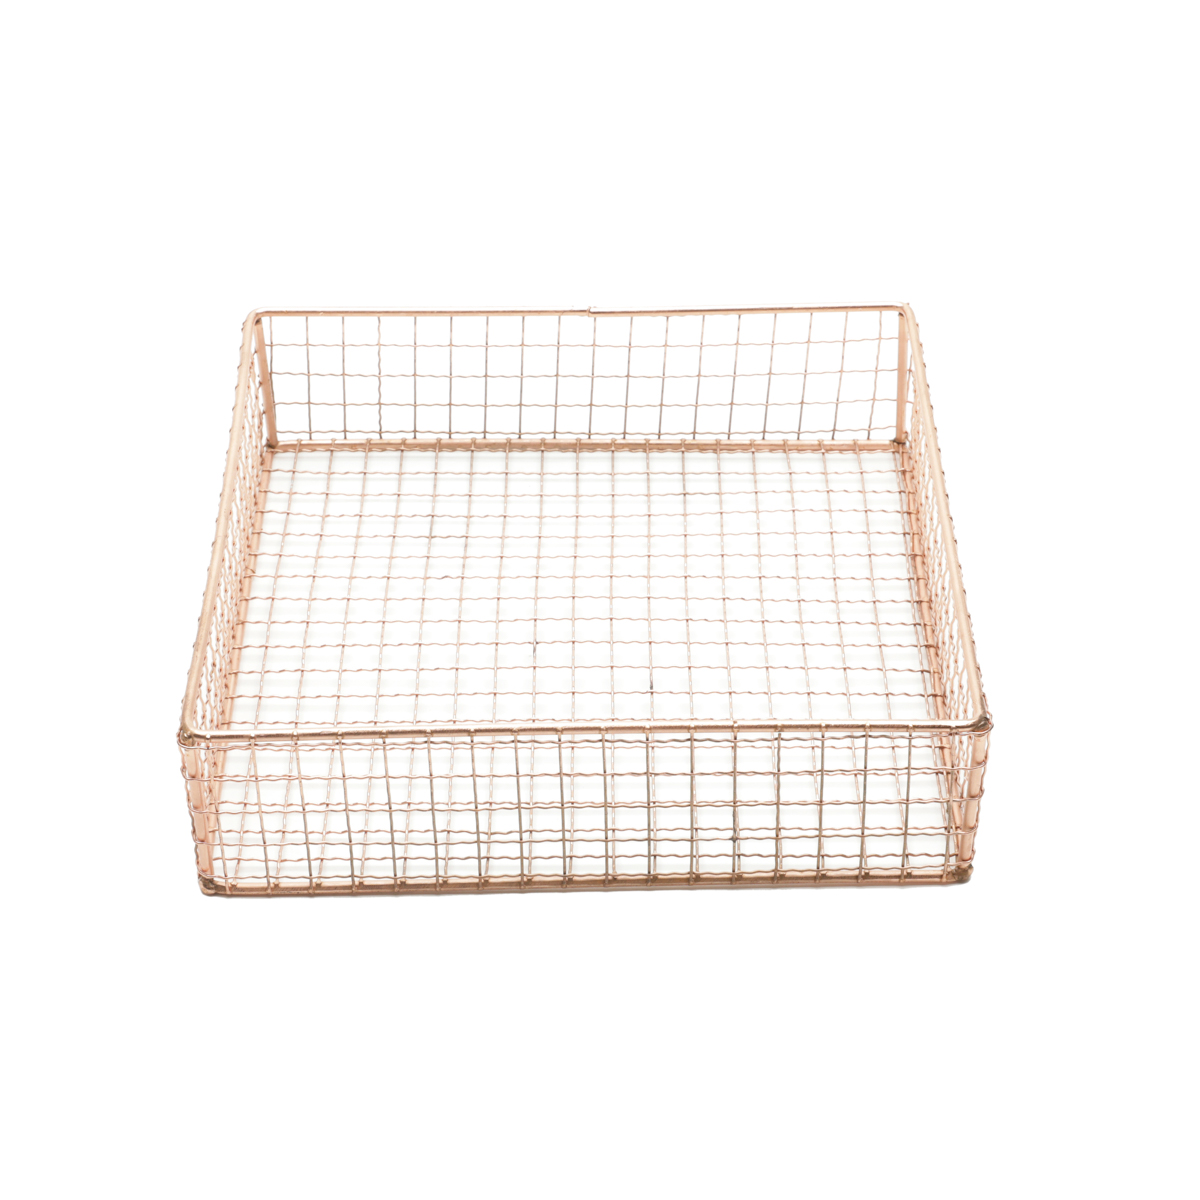 Cesta Metal Square Wire Cobre Gde 2.5 x 2.5 x 20 cm